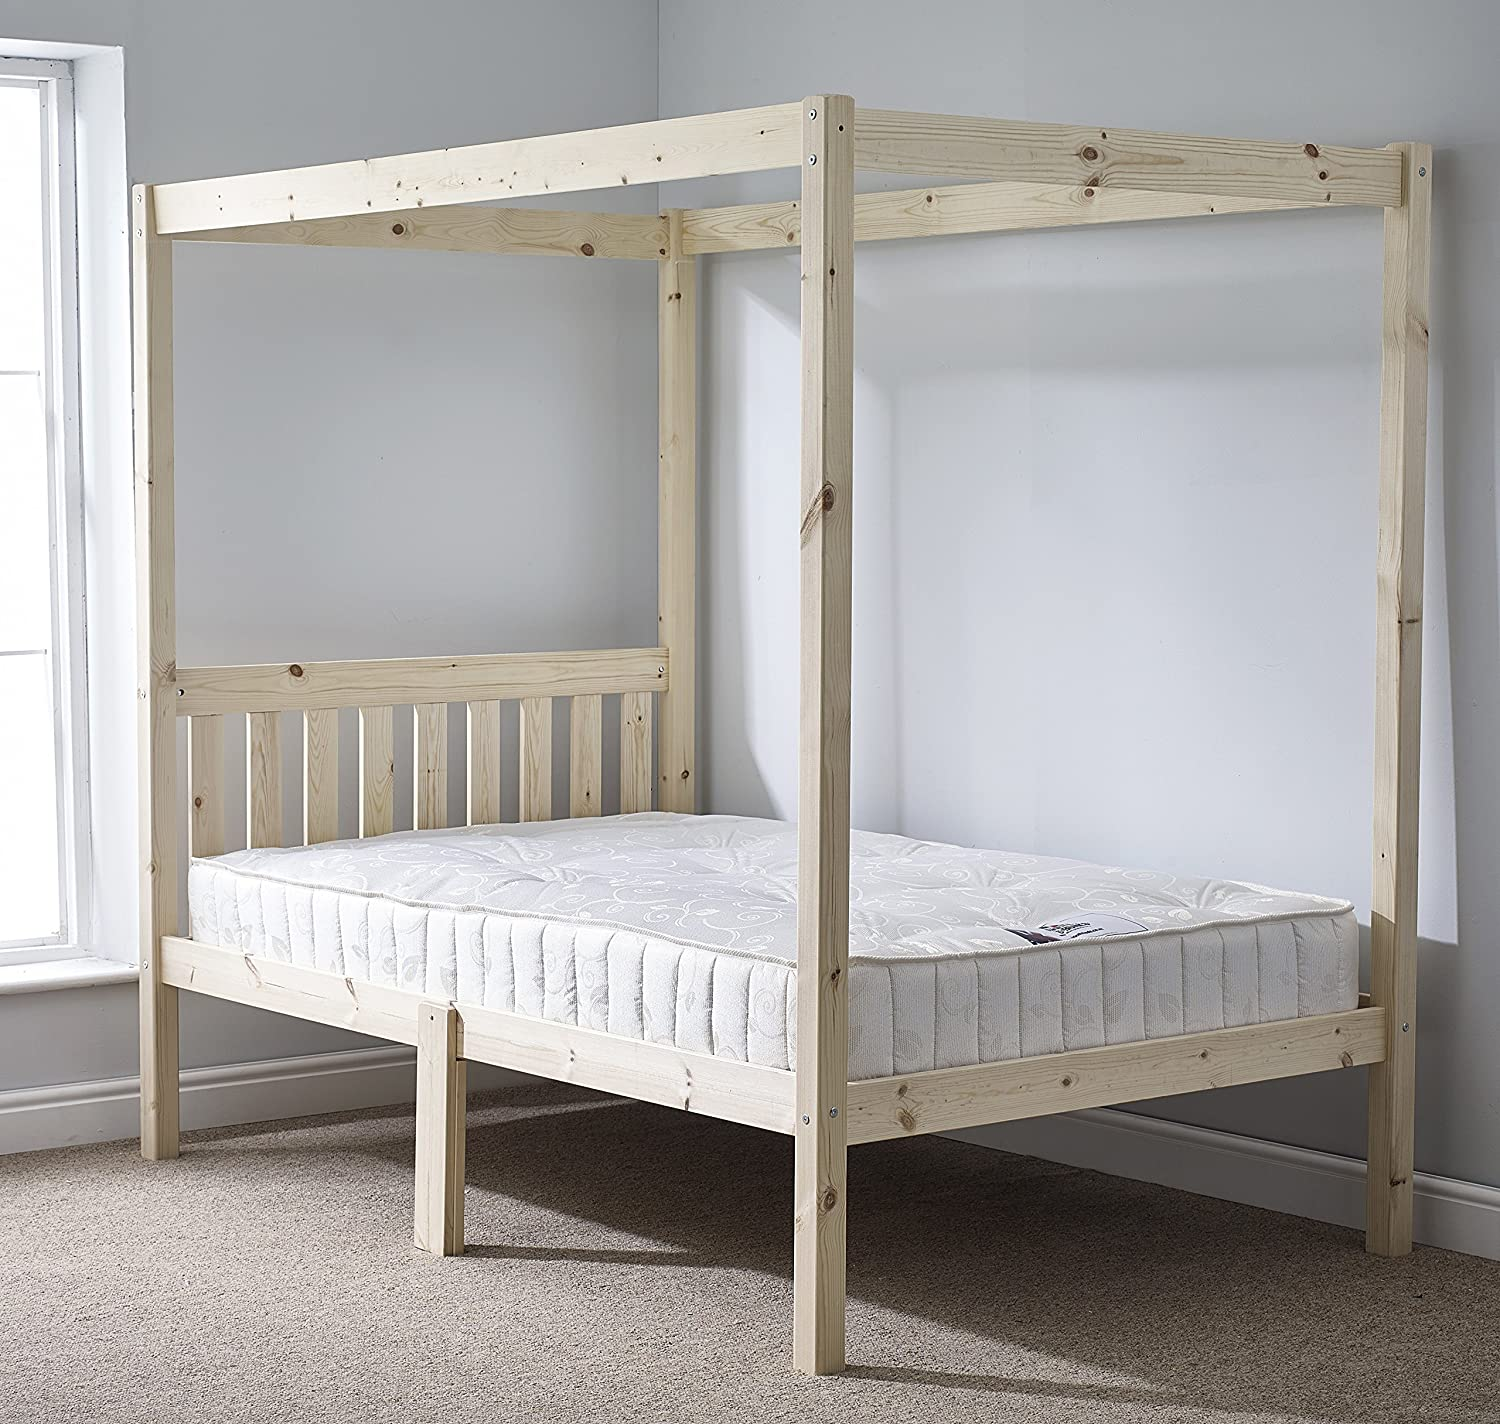 Strictly Beds And Bunks Pine Four Poster Bed With Memory Foam Mattress 4ft 6 Double Amazon Co Uk Kitchen Home